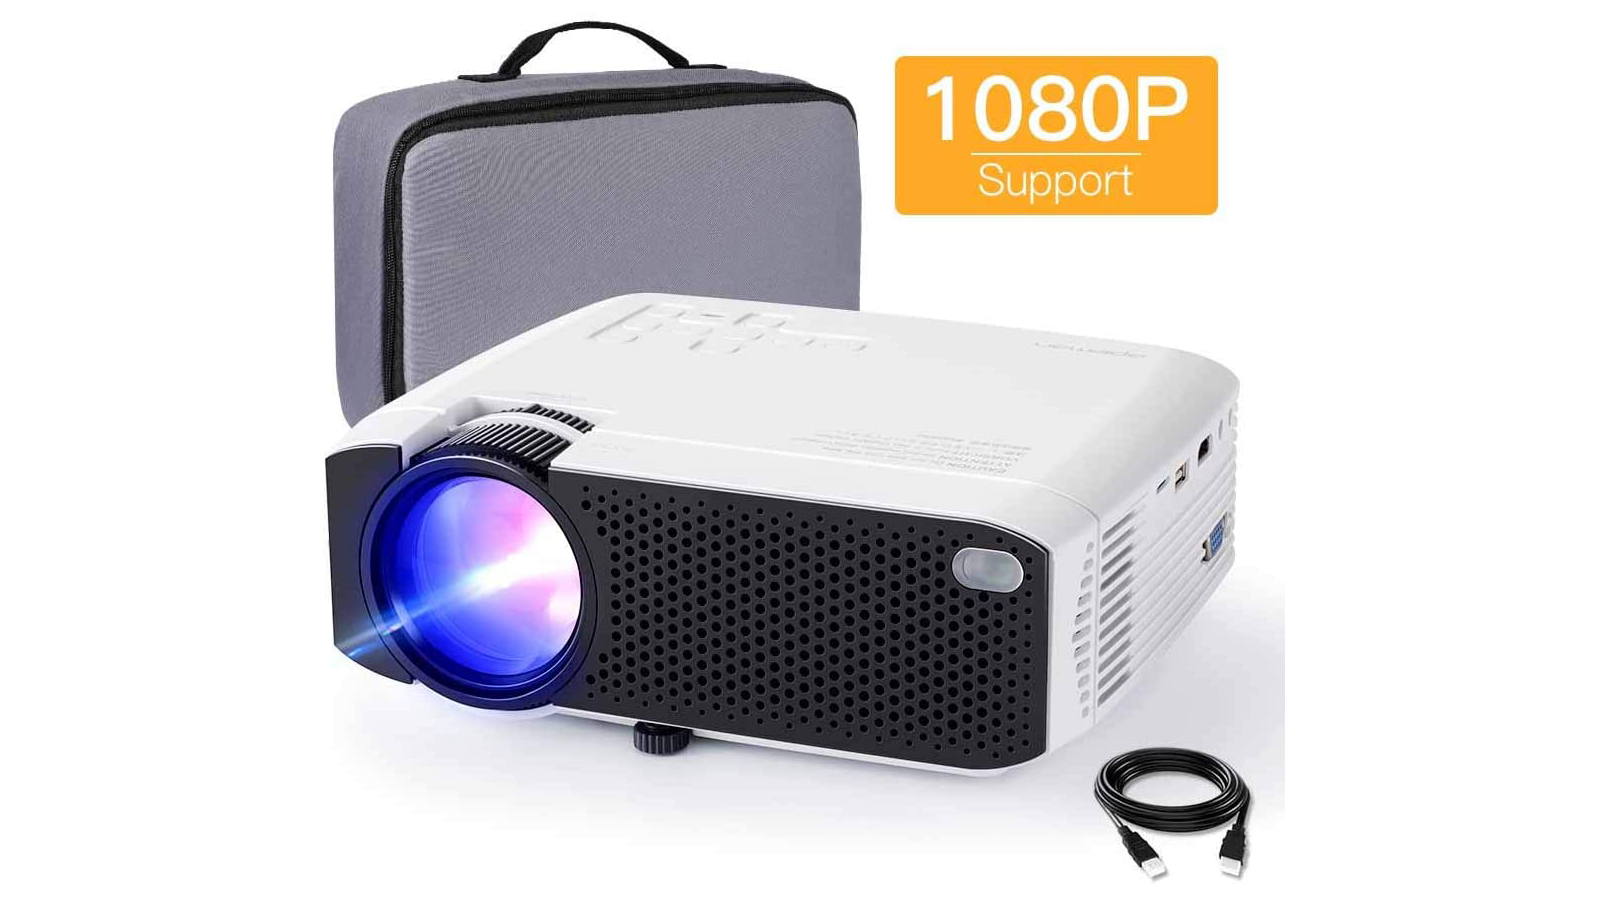 Apeman LC350 best portable mini projector for Father's Day 2020 4000 lumens 2000:1 contrast ratio 180 inches quiet fan dual speakers compatible with TV sticks TV boxes Google Chromecast gaming consoles HDMI VGA AV USB ports